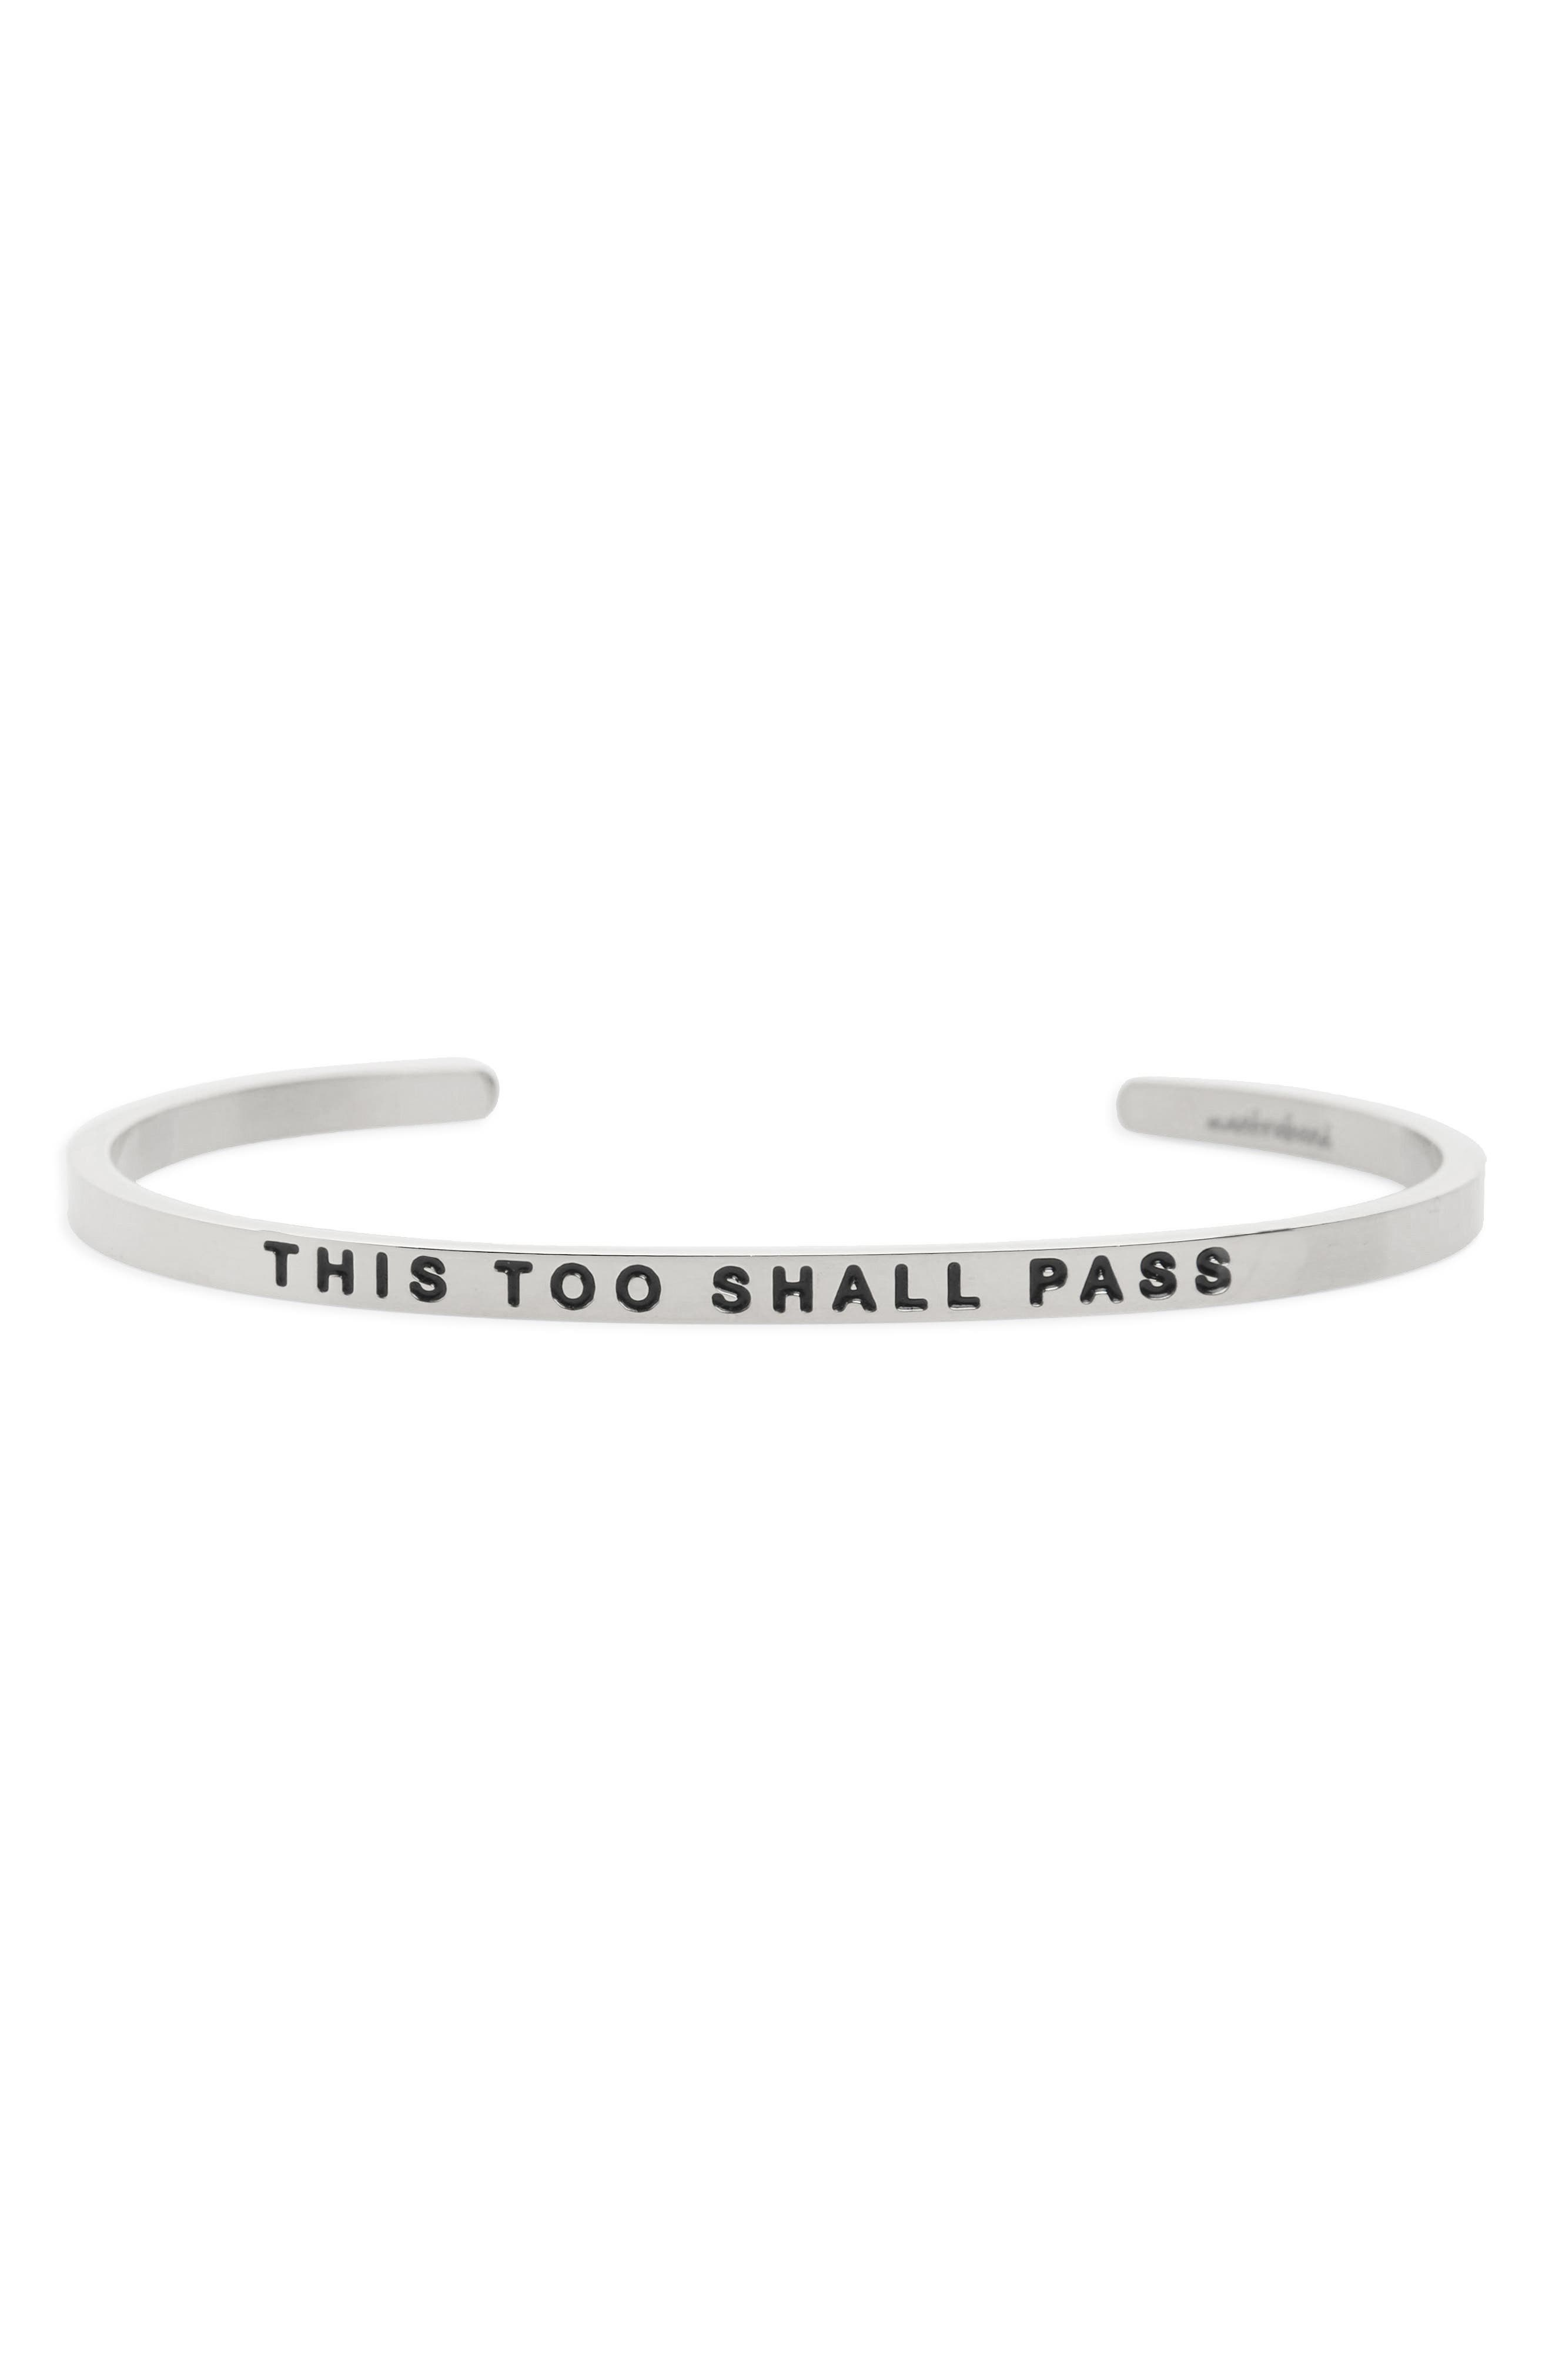 This Too Shall Pass Wrist Cuff,                         Main,                         color,